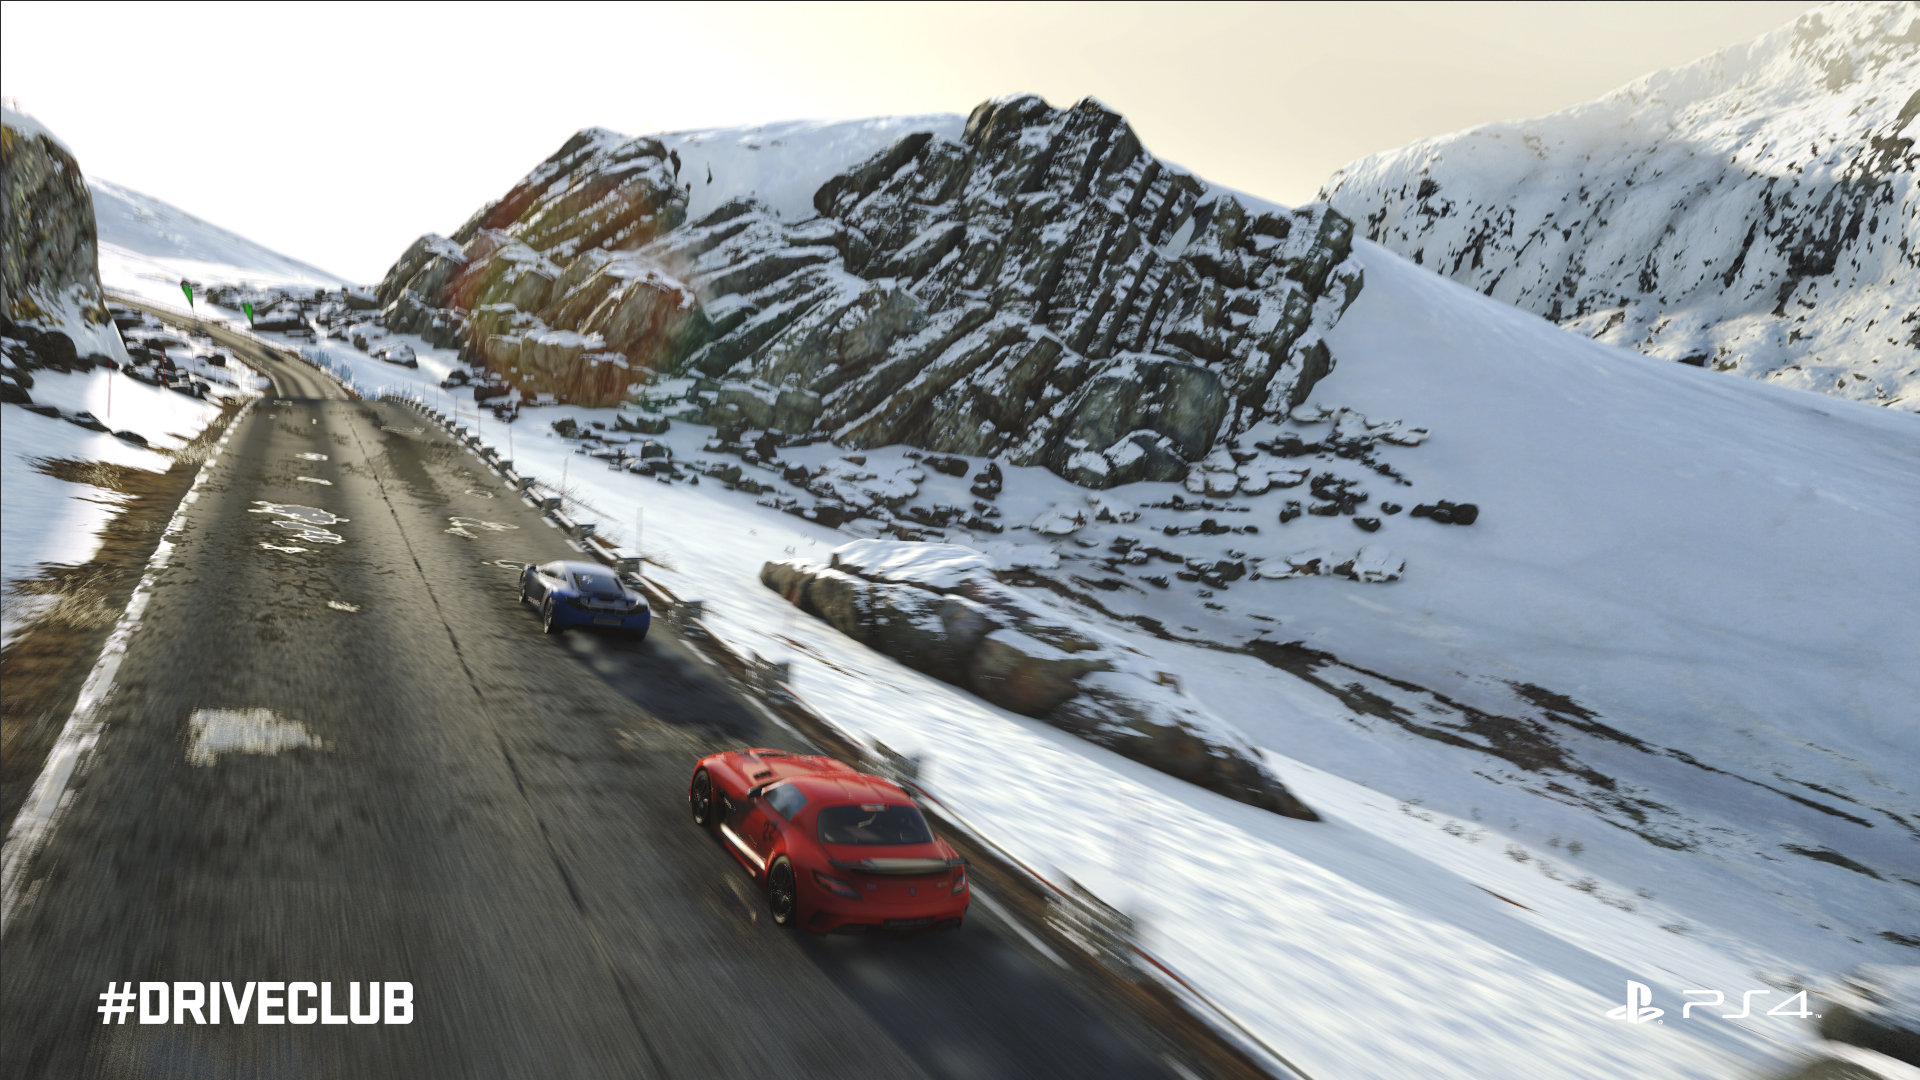 driveclub-screen-33-ps4-us-26aug14?$Medi